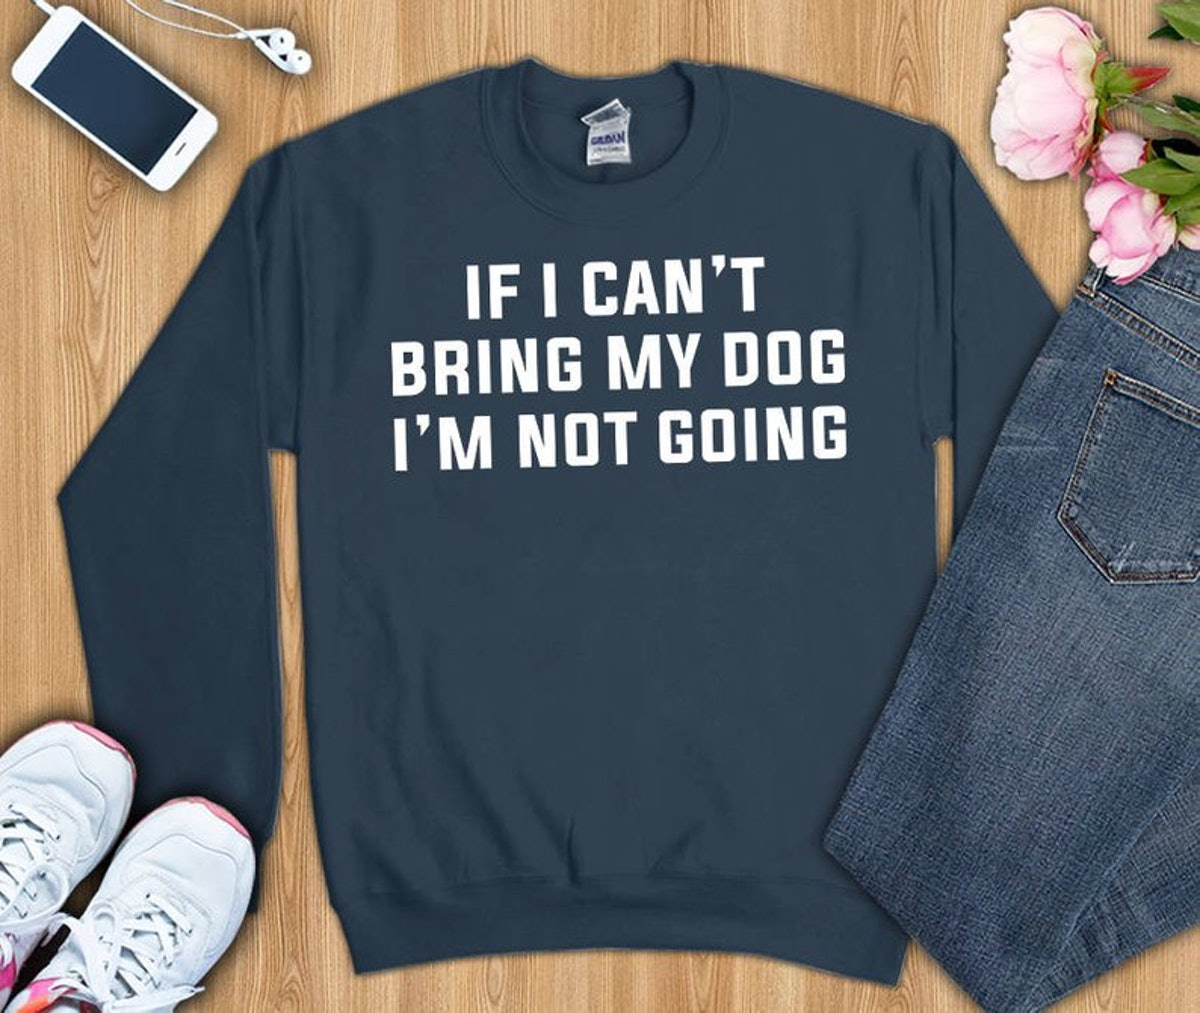 16 Mother's Day 2019 Gifts For Dog Moms That Are Too Cute